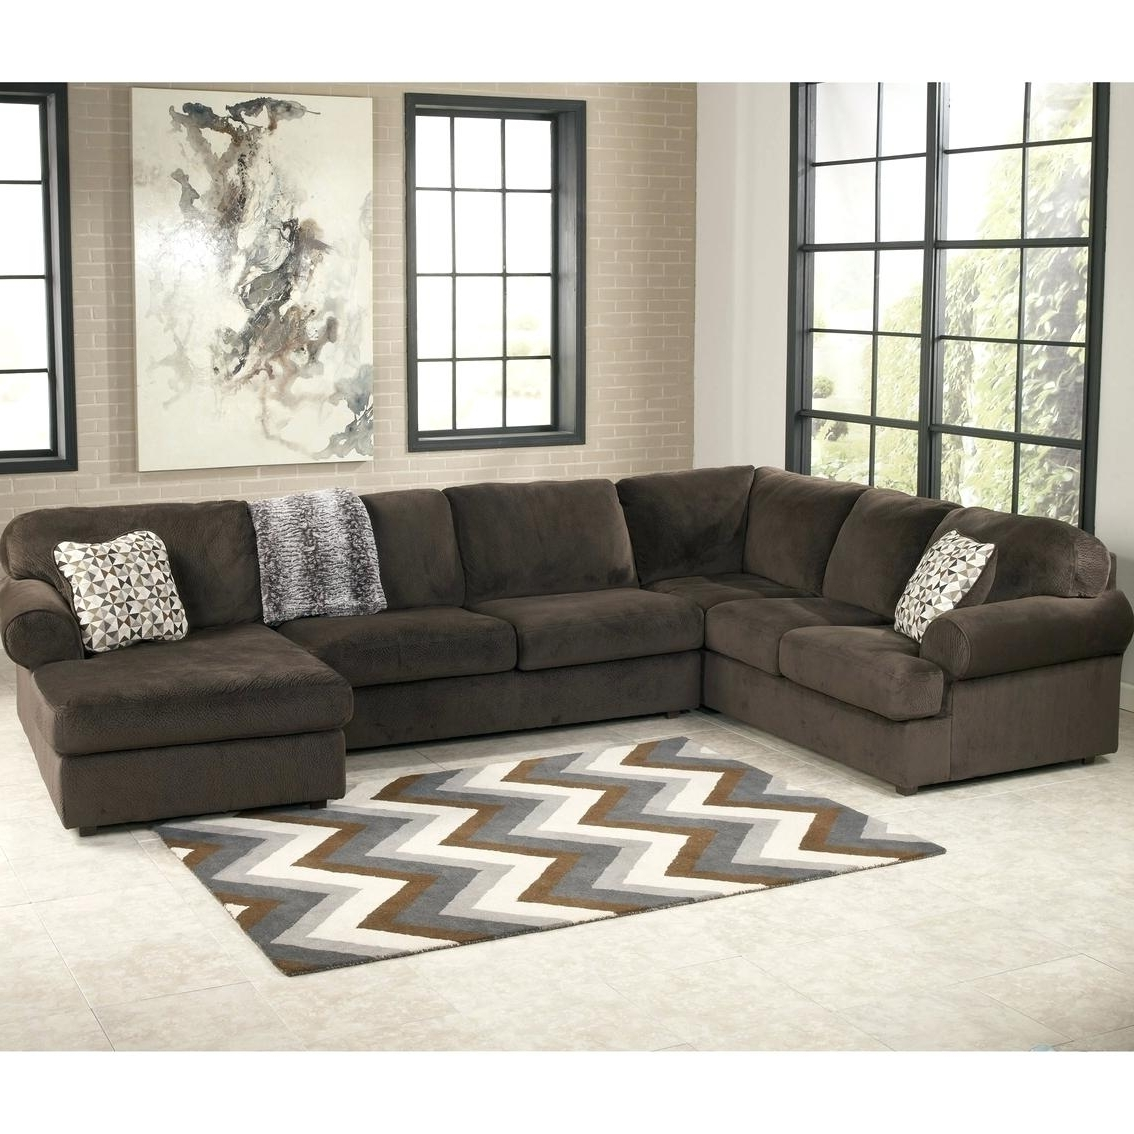 Harrisburg Pa Sectional Sofas Regarding Famous Sectionals Sofa Sofas Cheap Sectional For Small Spaces Canada (View 11 of 15)